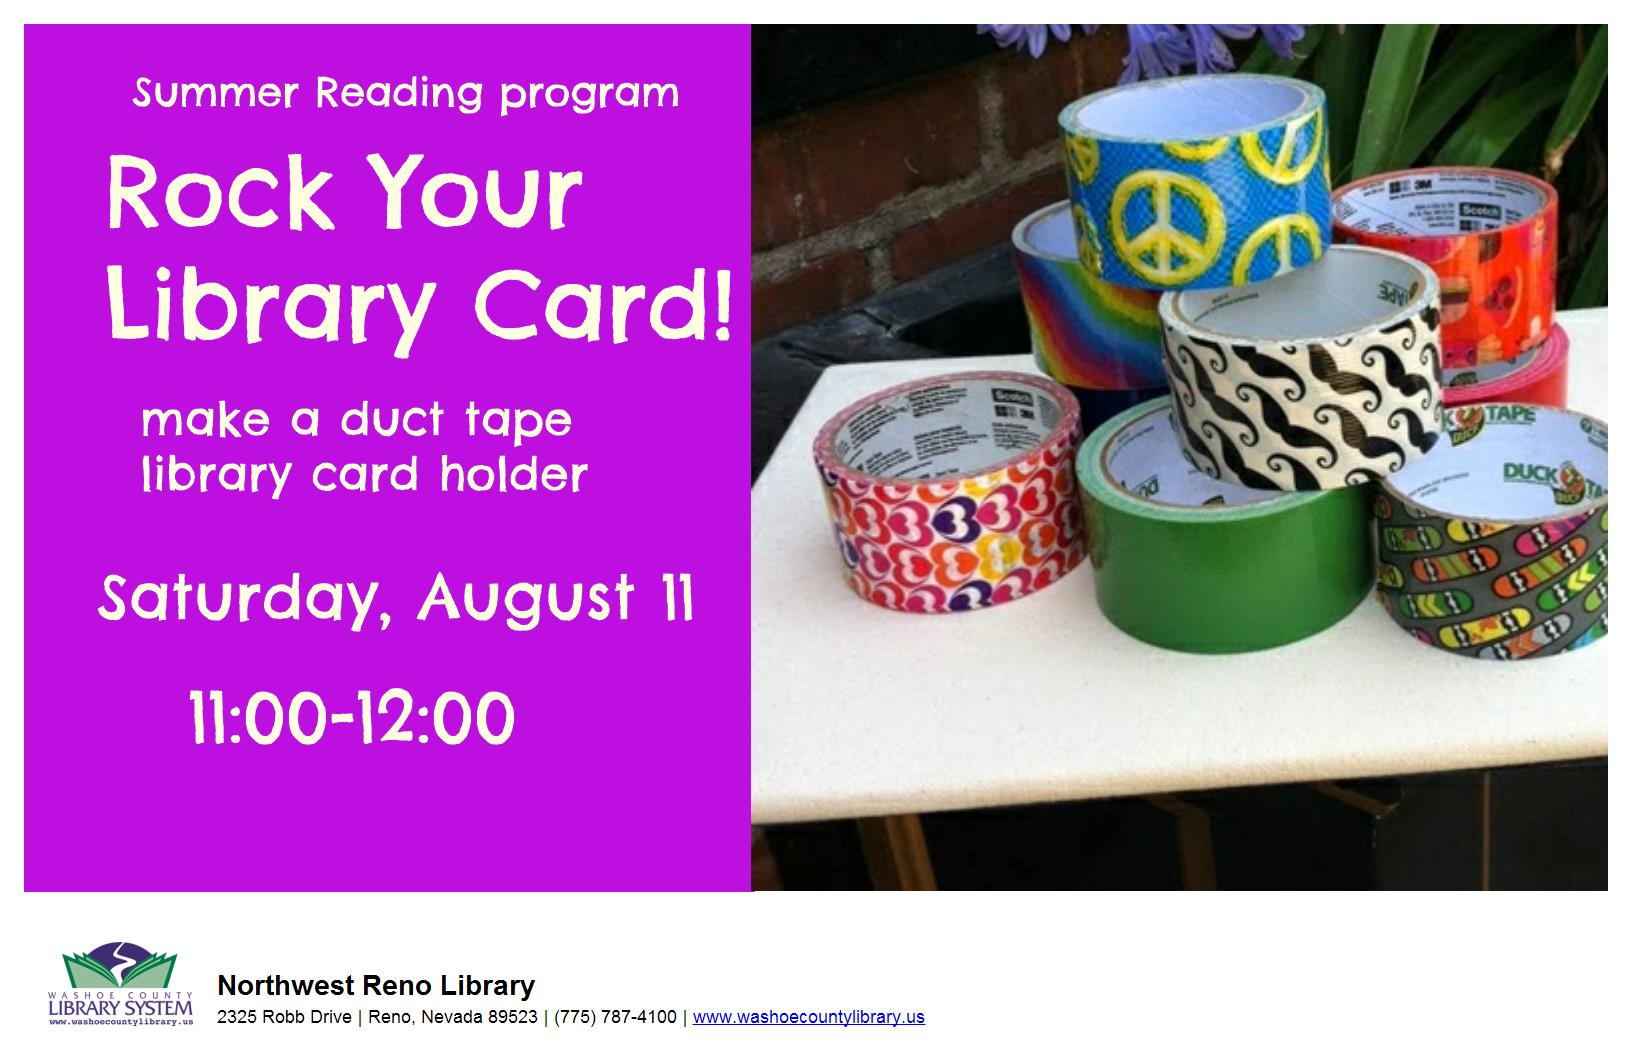 Rock Your Library Card!